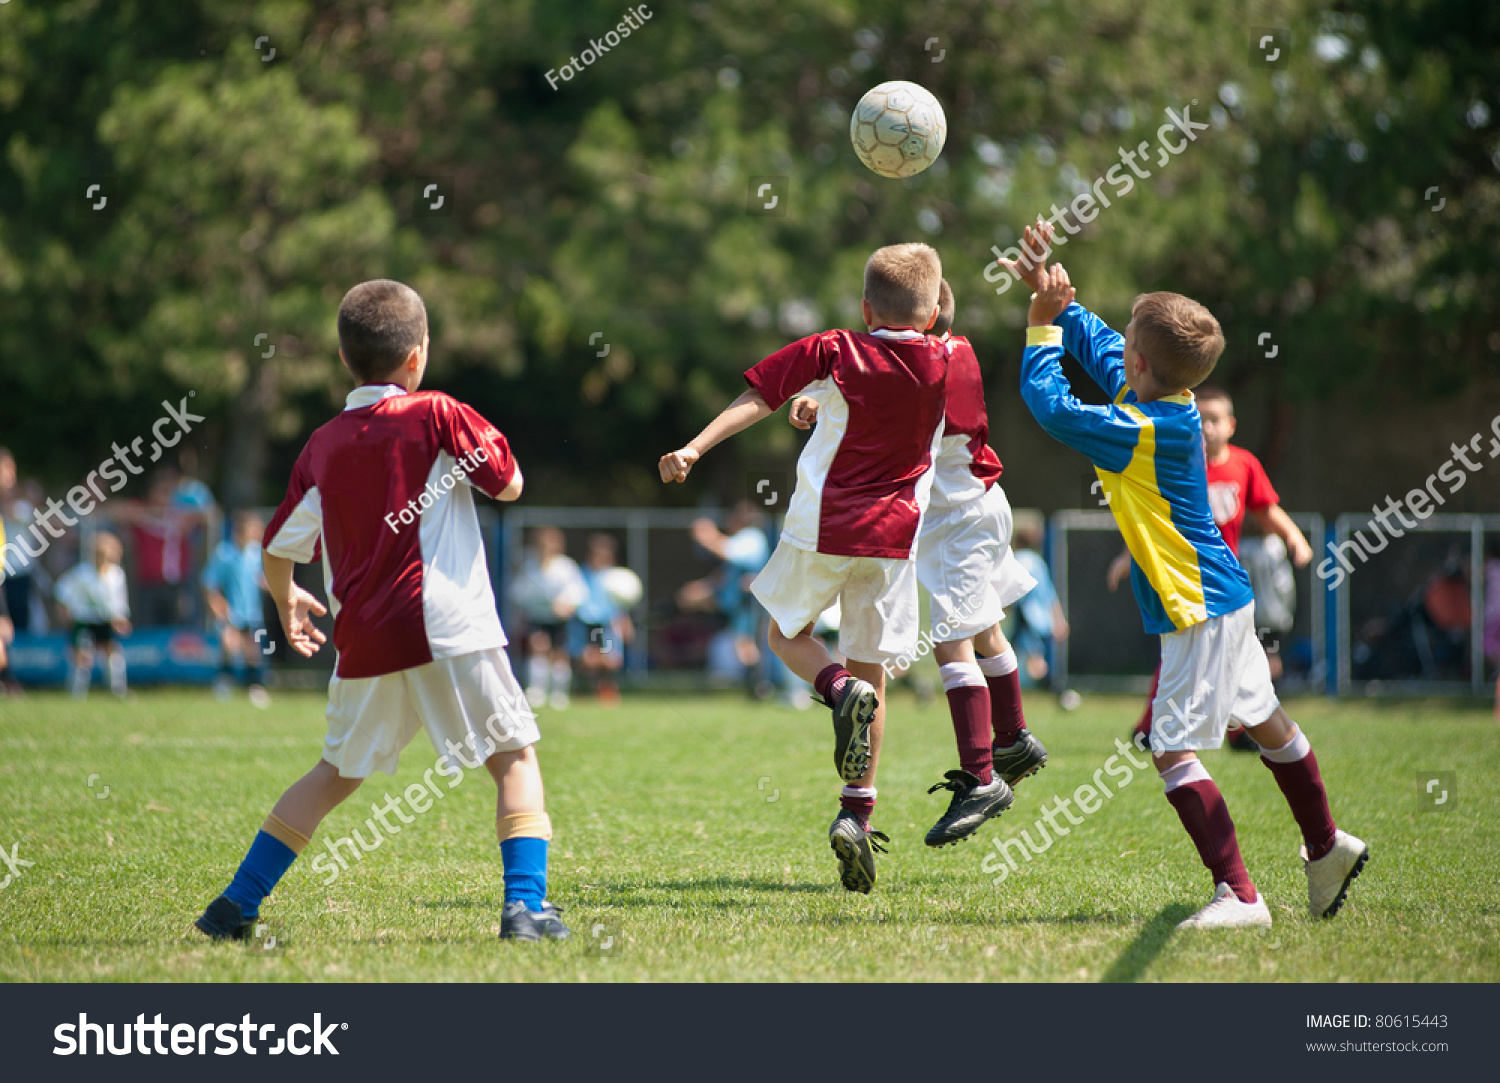 the sport of soccer The latest soccer | football news, live coverage, results, fixtures, tips, opinion and analysis from the sydney morning herald covering a-league, premier league, the socceroos, european and world football.